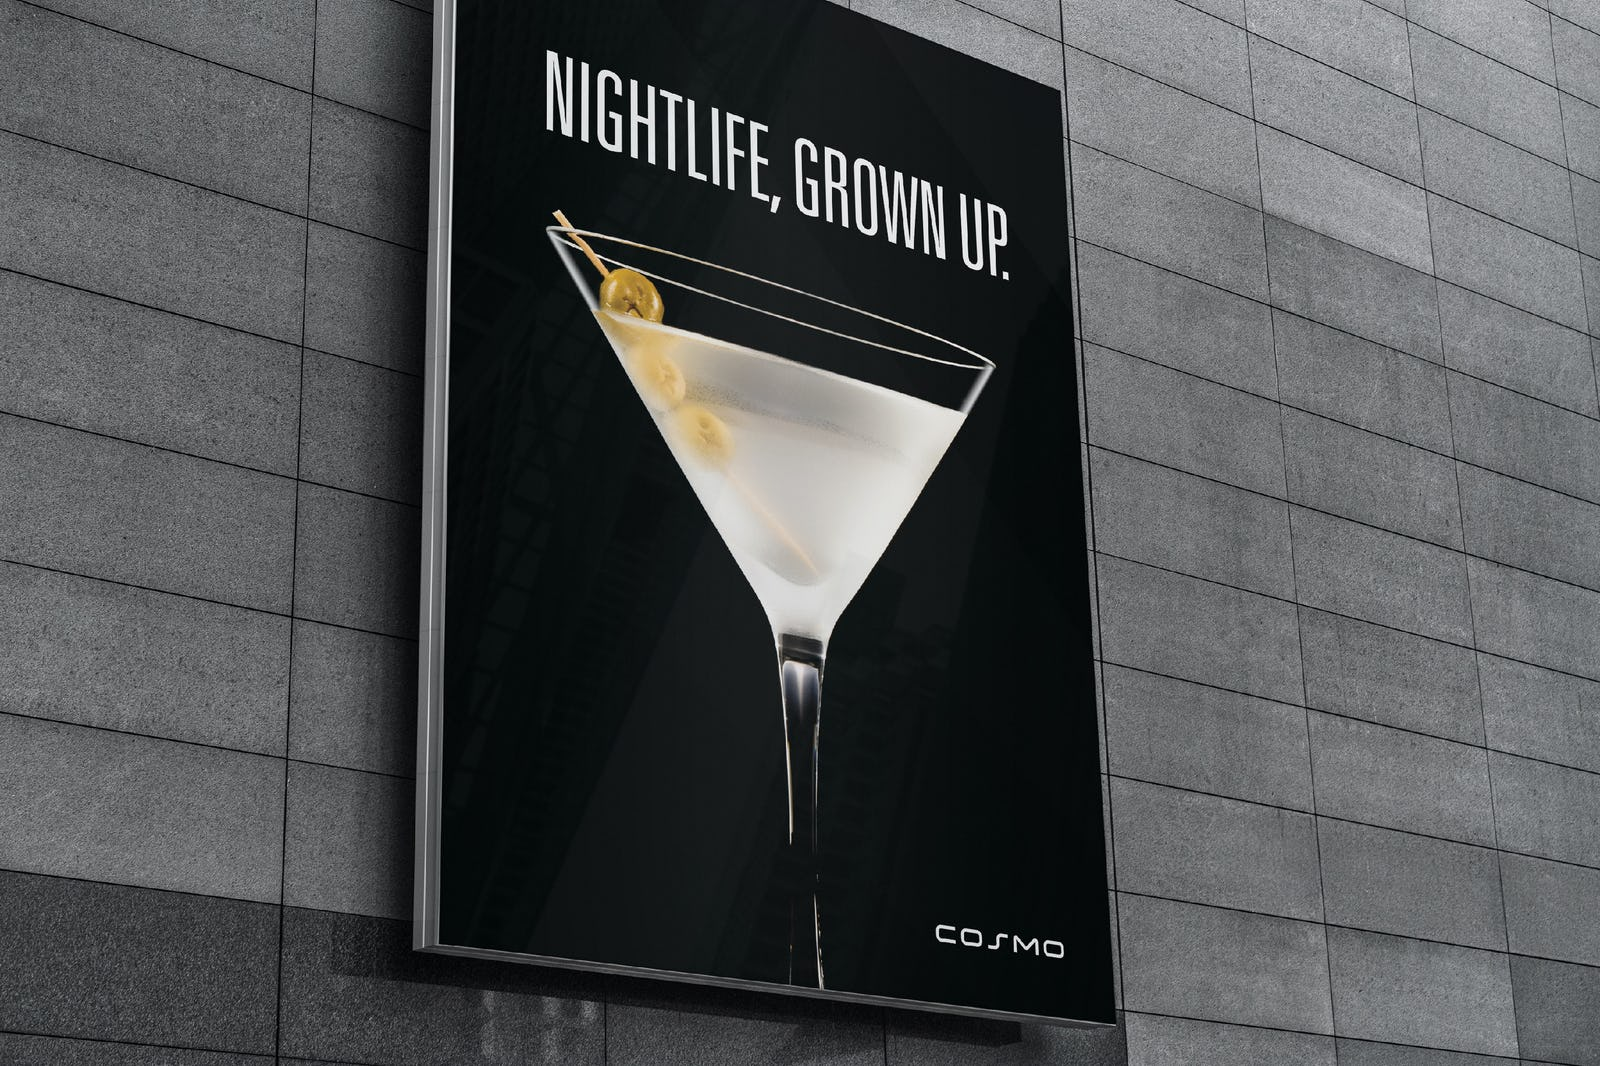 Cosmo nightlife ad design